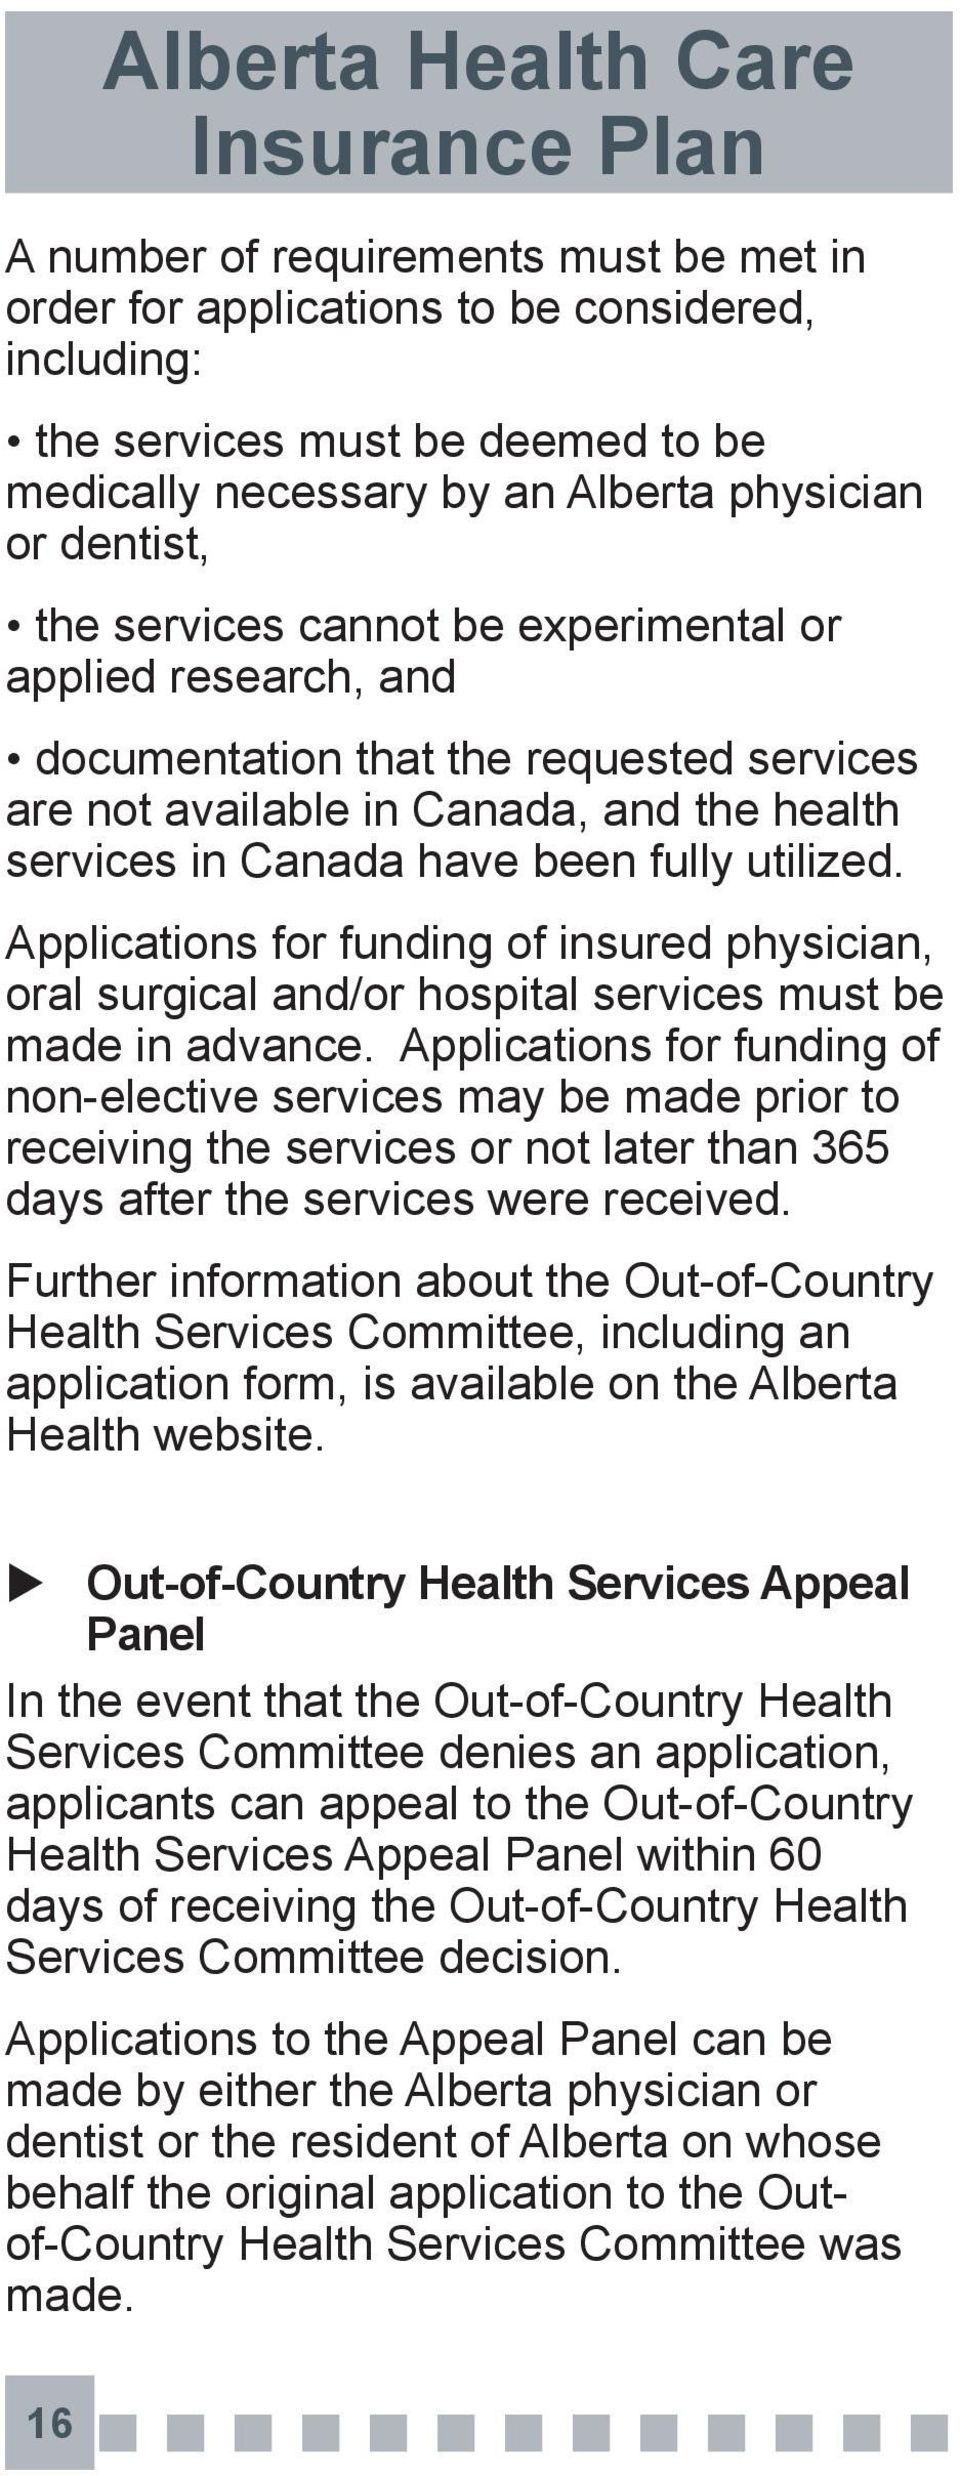 Applications for funding of insured physician, oral surgical and/or hospital services must be made in advance.